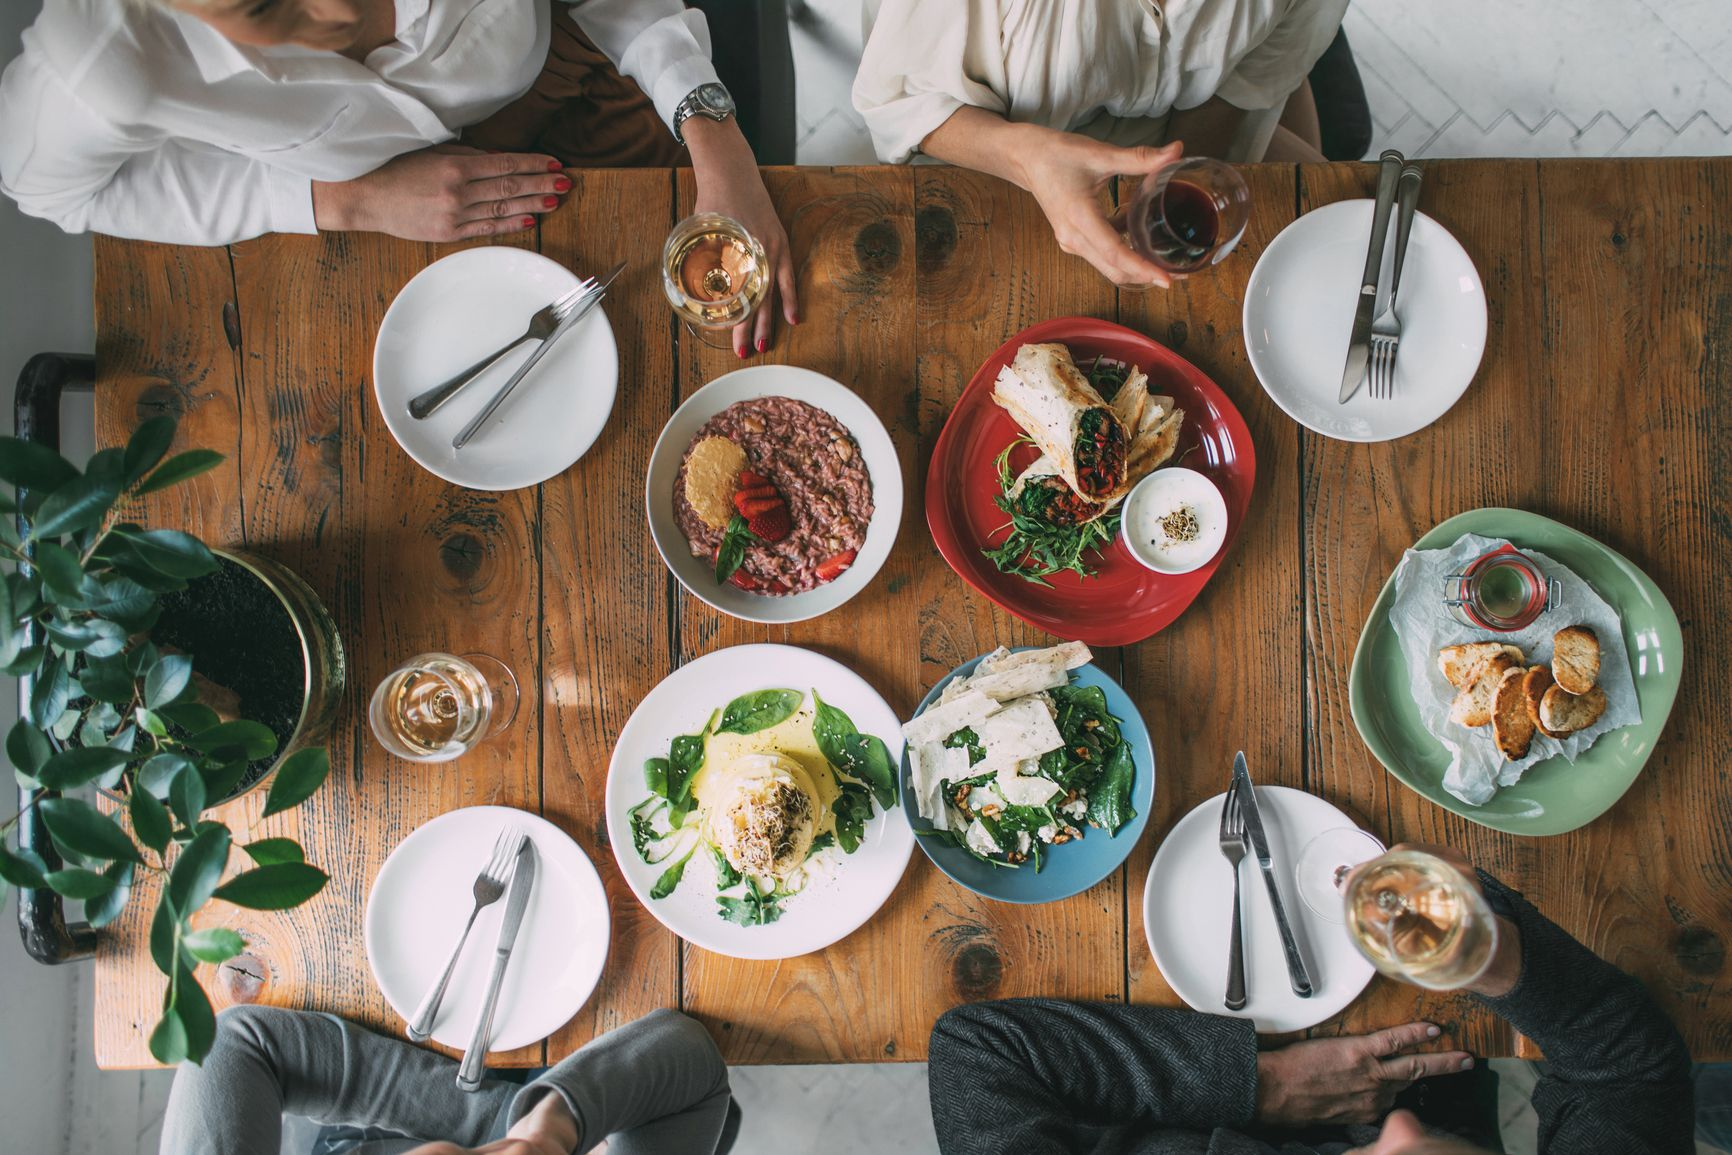 Tips On Proper Etiquette At The Table